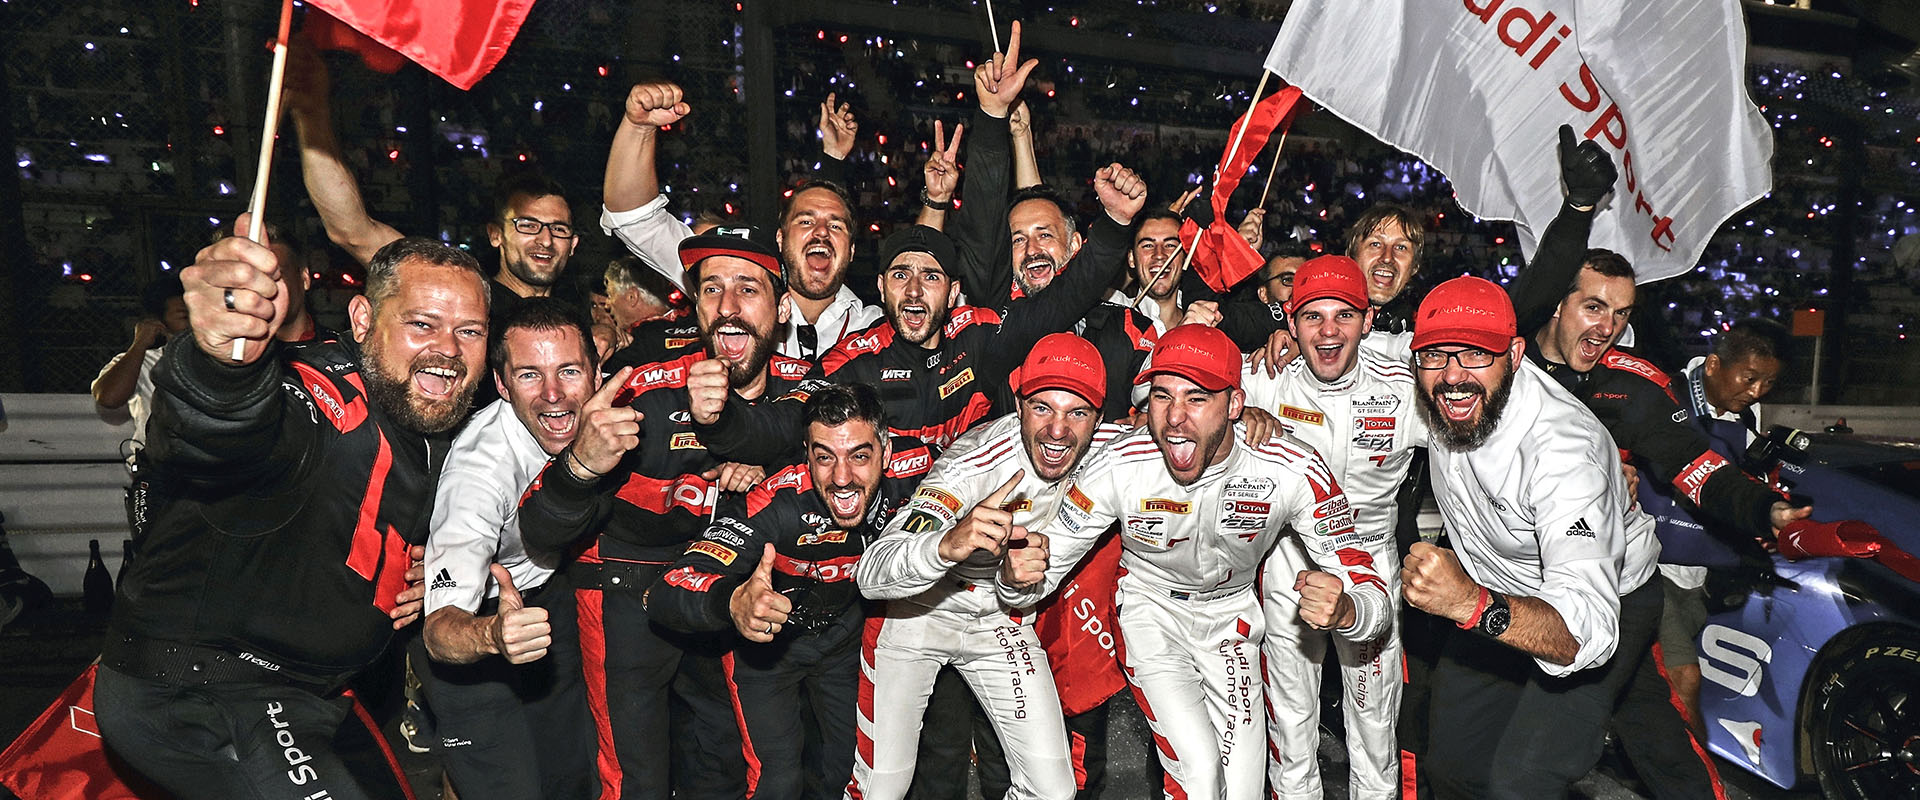 Audi Sport Team WRT celebrating